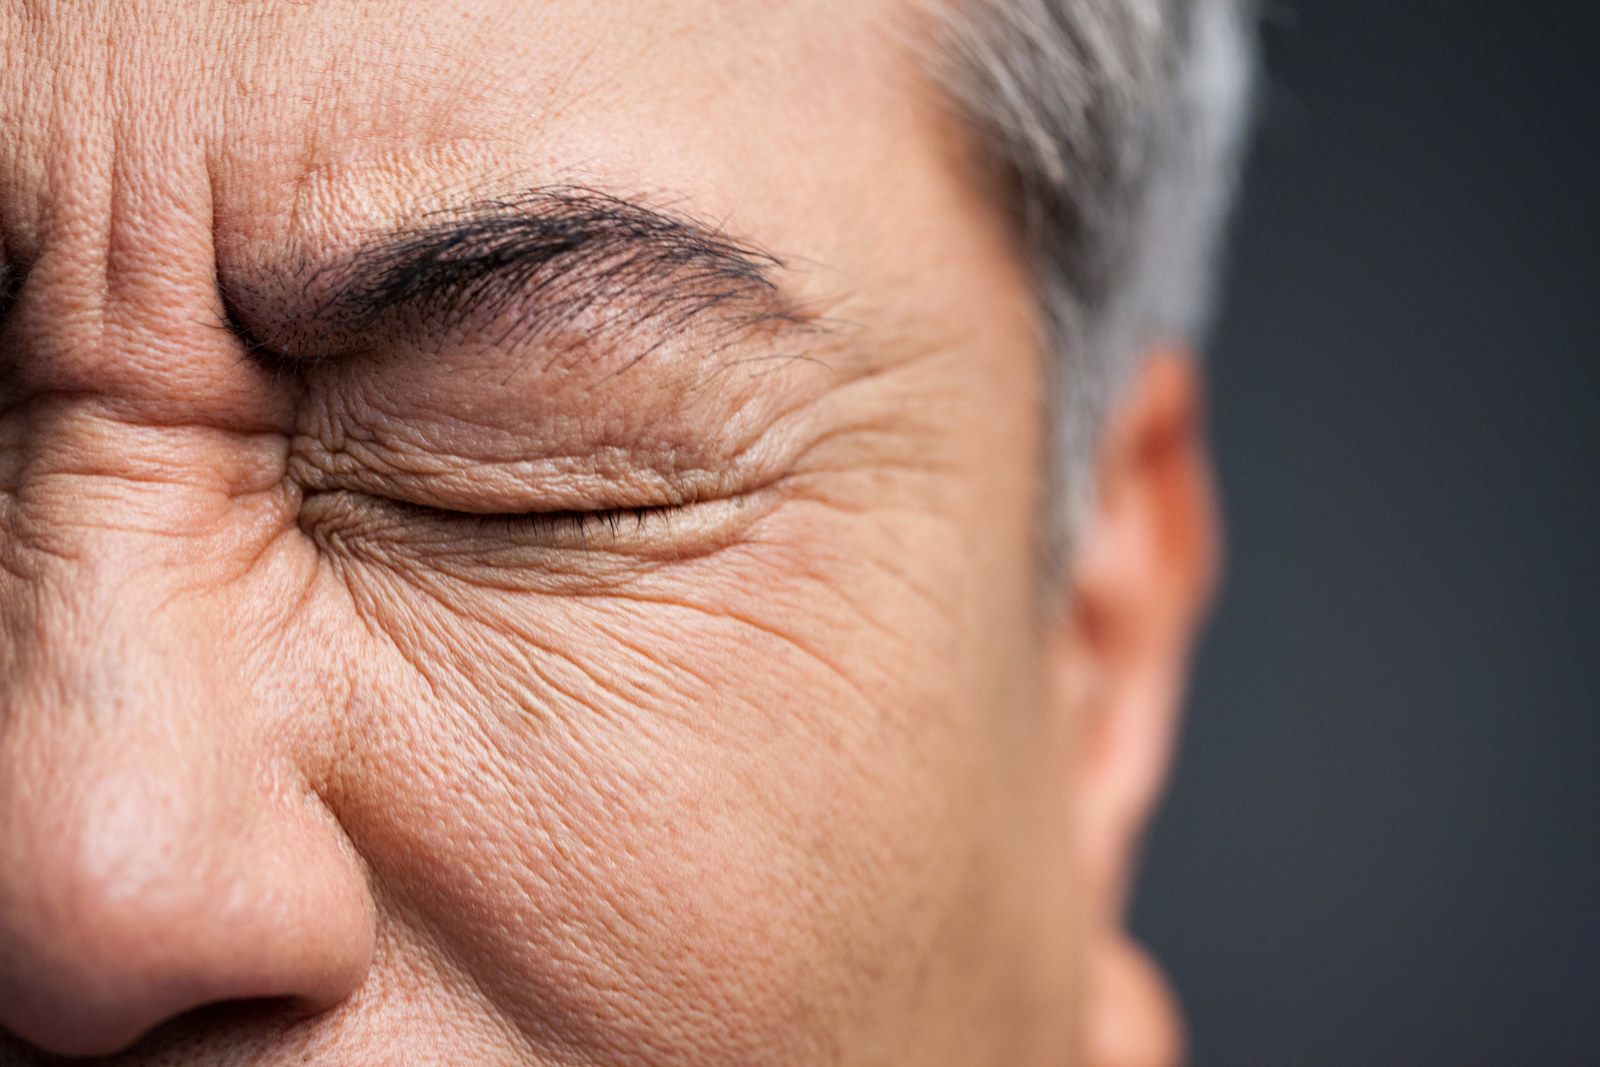 how to tell if your eyes are damaged from alchohol